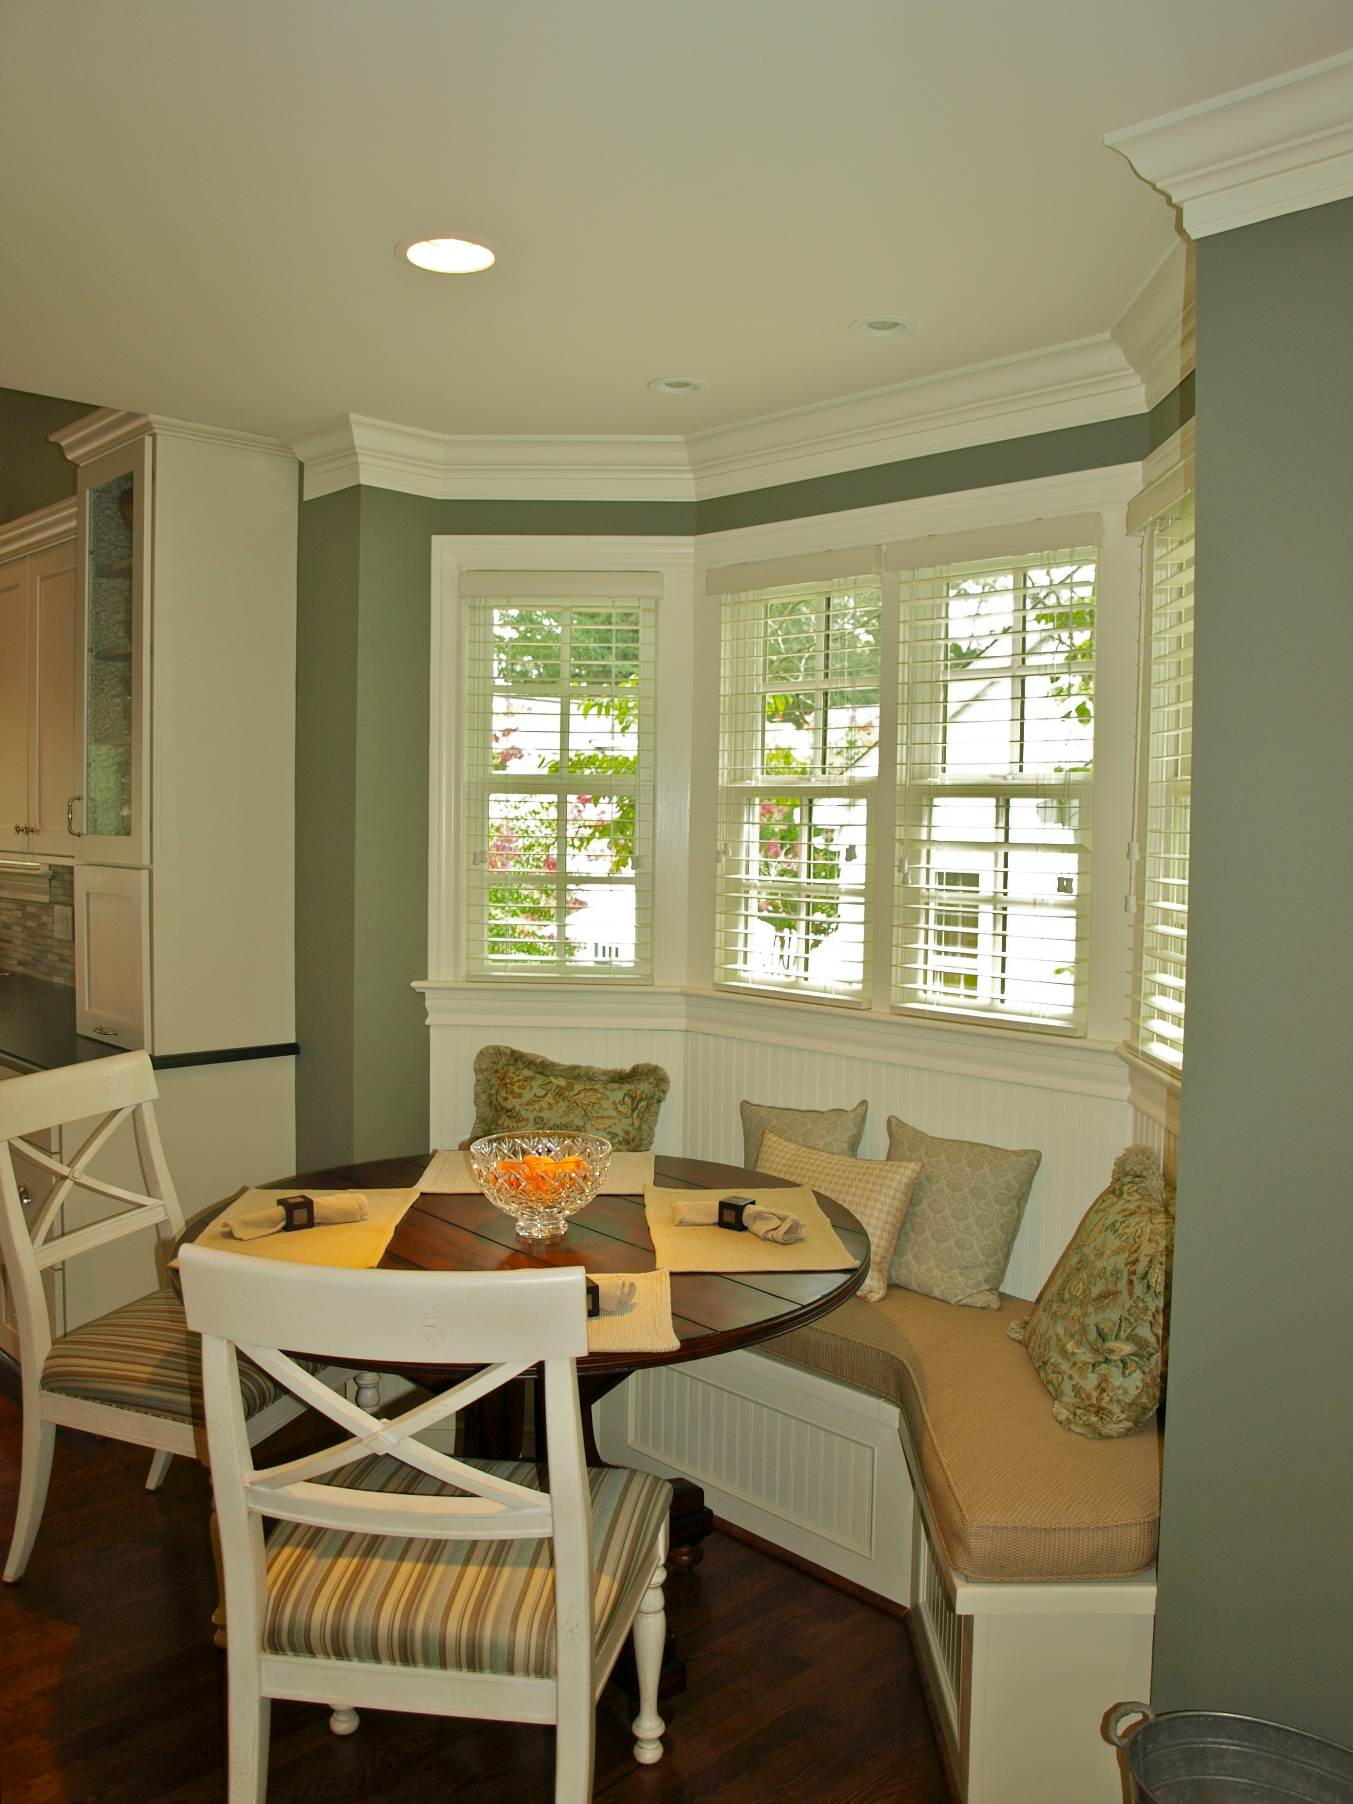 Greenville Renovations And Remodeling – Cool Designs